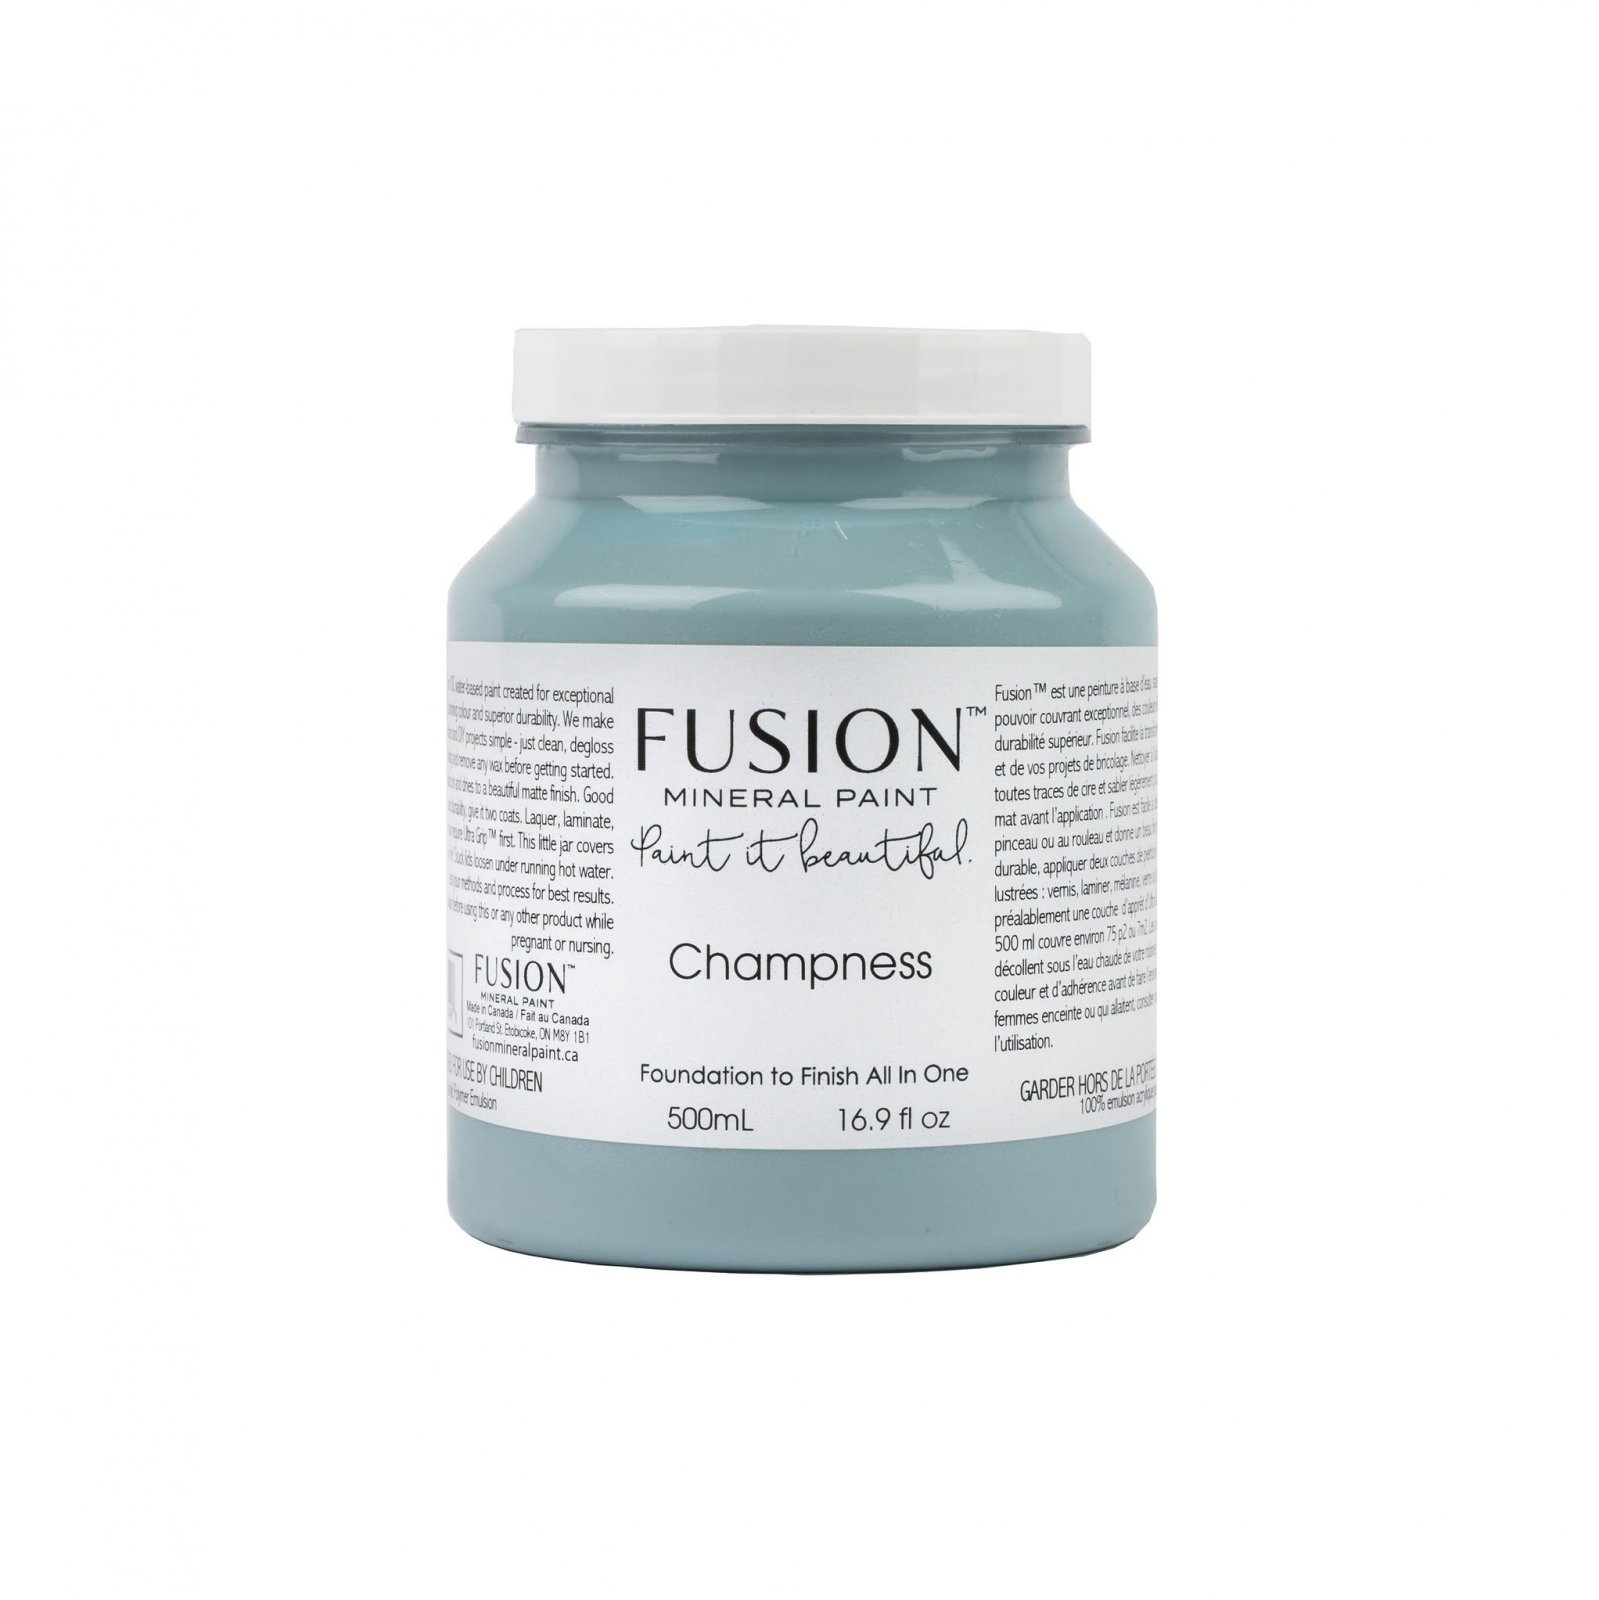 Champness Pint Fusion Mineral Paint